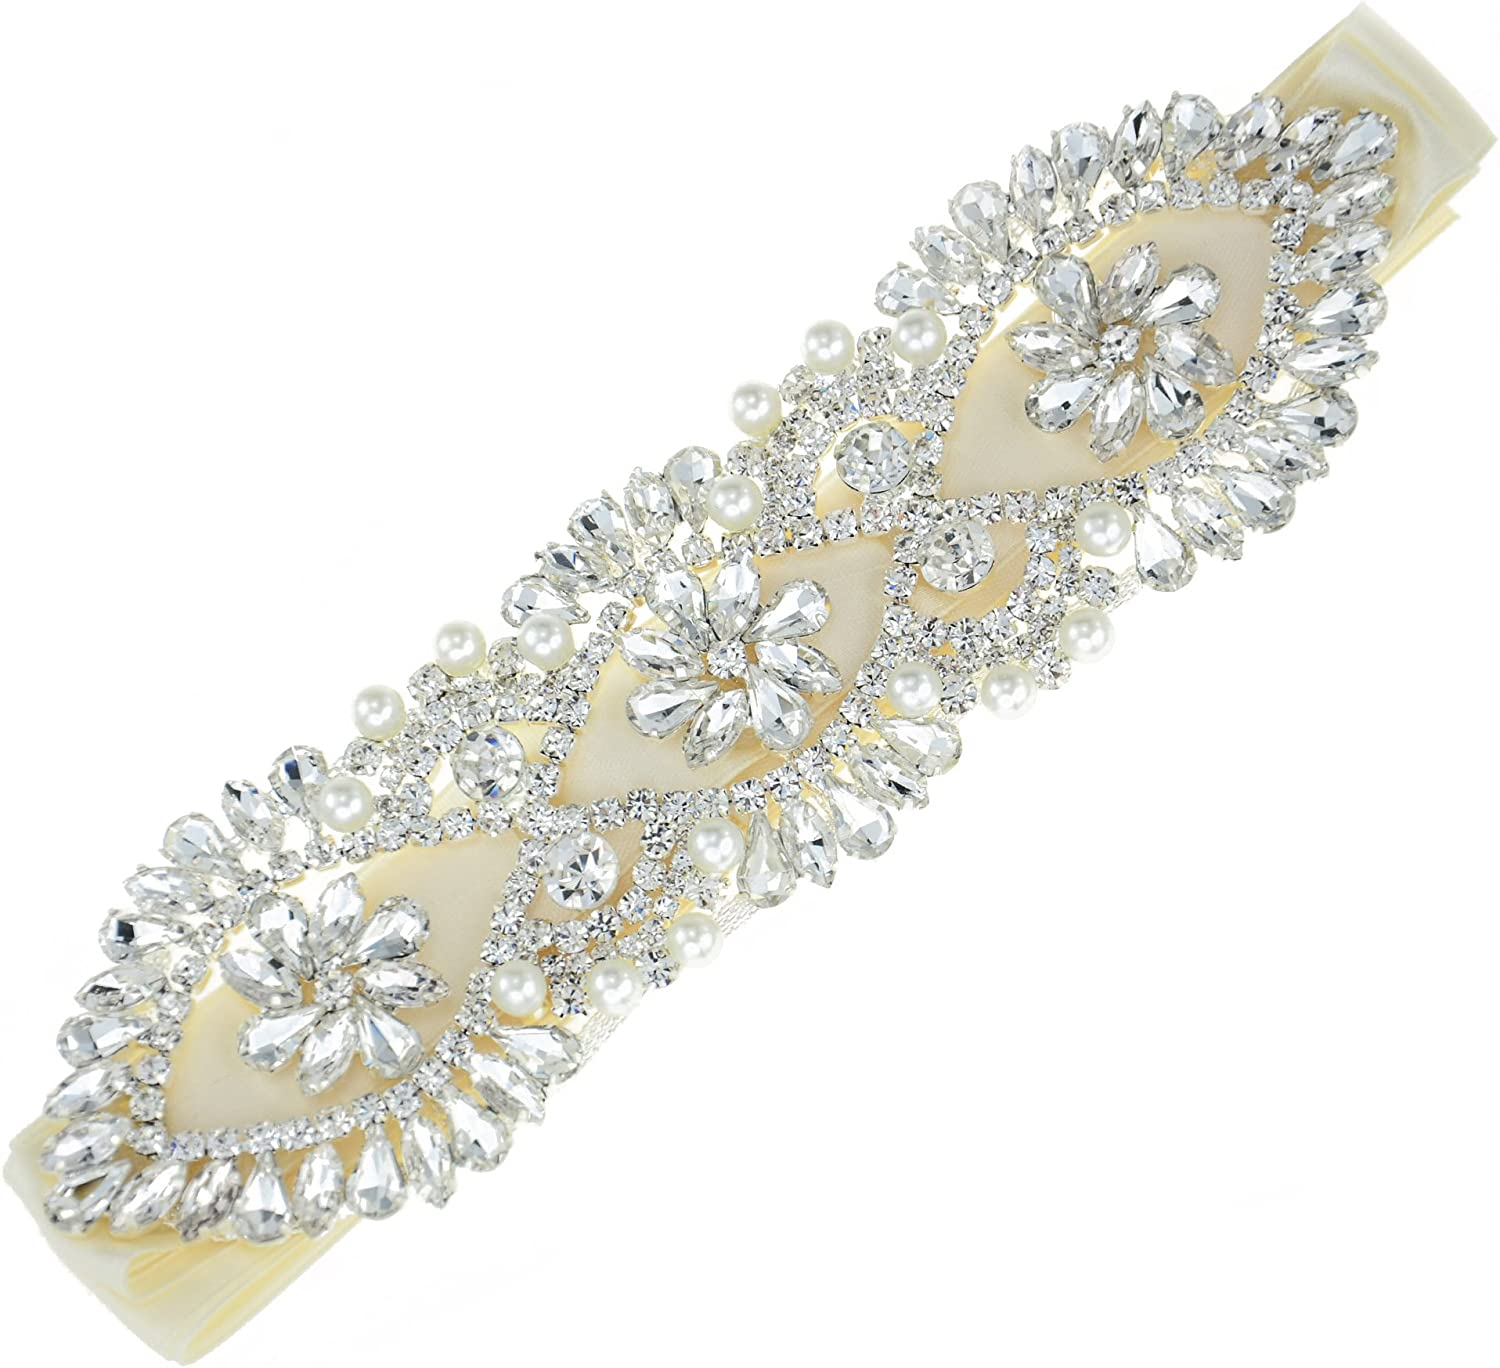 Shinejoy Crystal Applique Sashes Wedding Dress Sash Rhinestone Trim Applique for Bridal Dresses Decorative Pearl Trim Belt Applique (Style5)